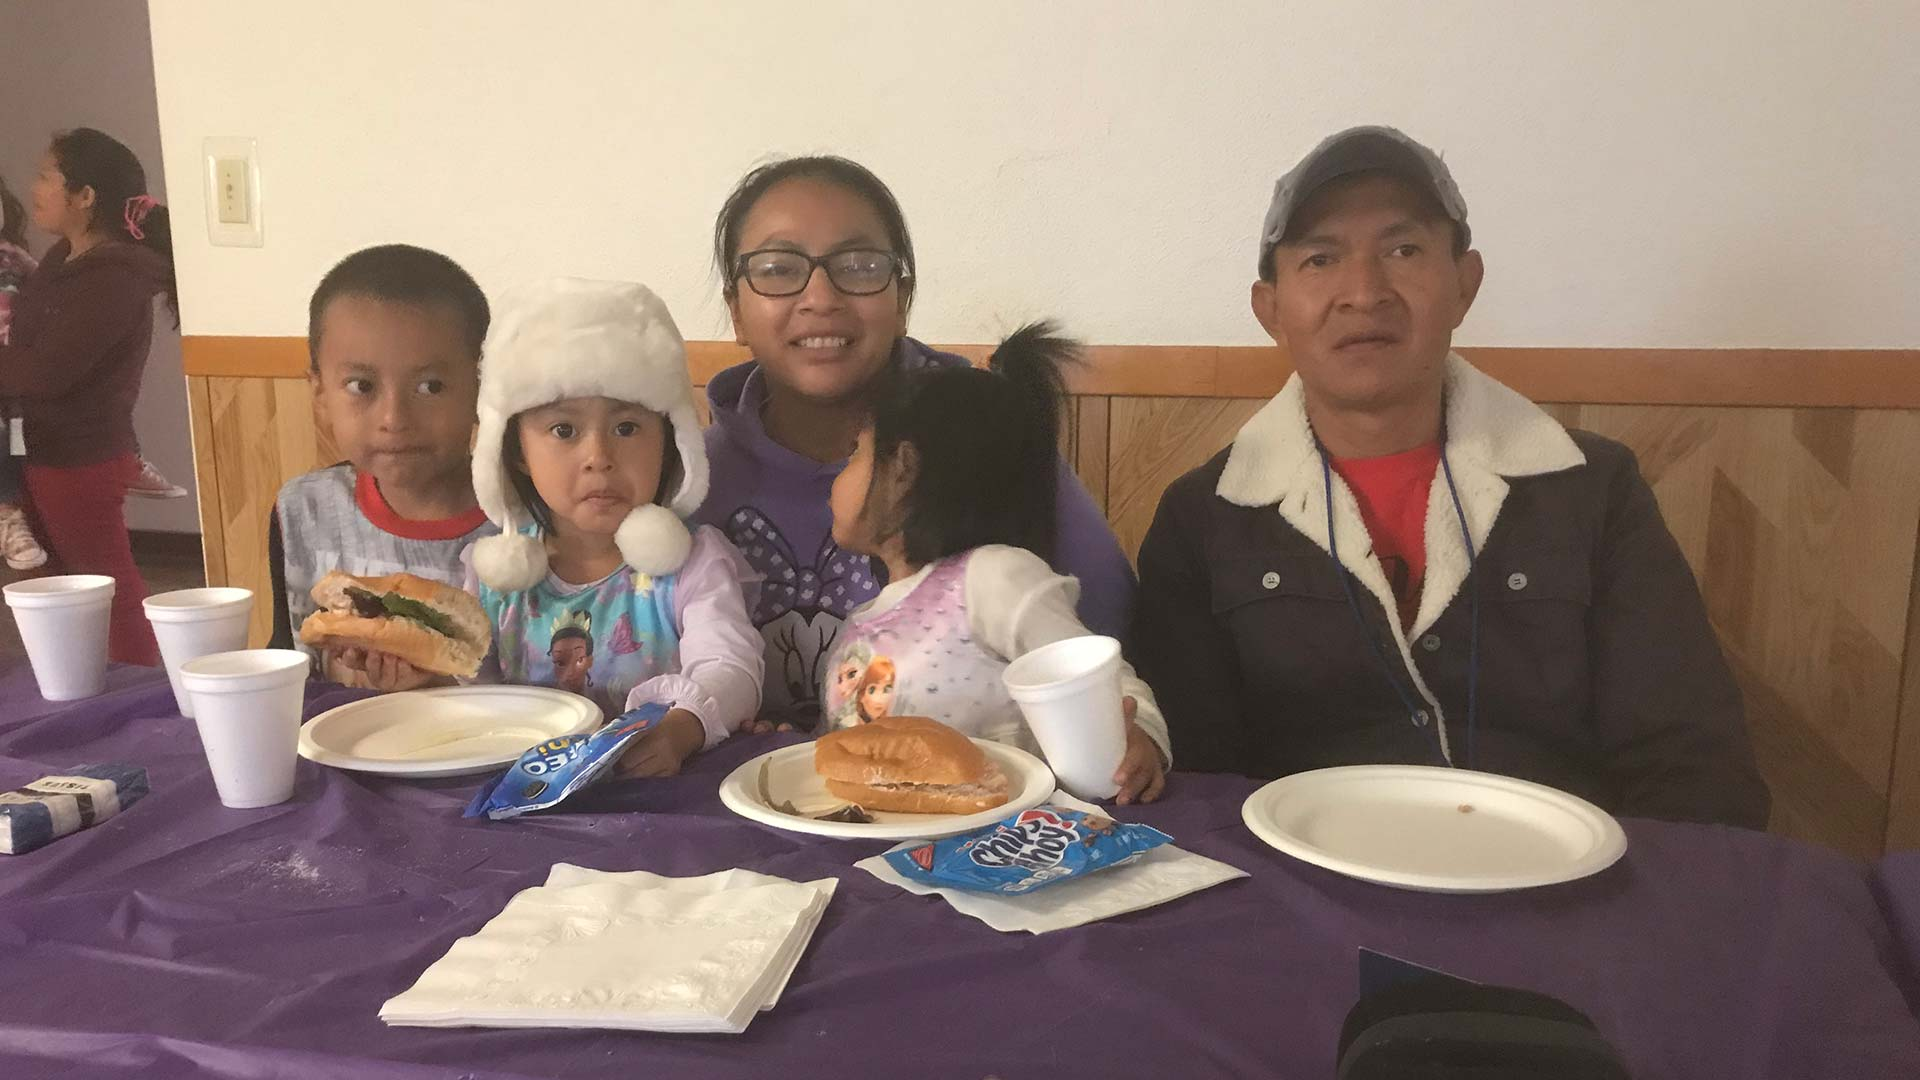 The Gallegos family spends the night at Tucson's Benedictine Monastery, Jan. 28, 2019. Their final destination is Tennessee.